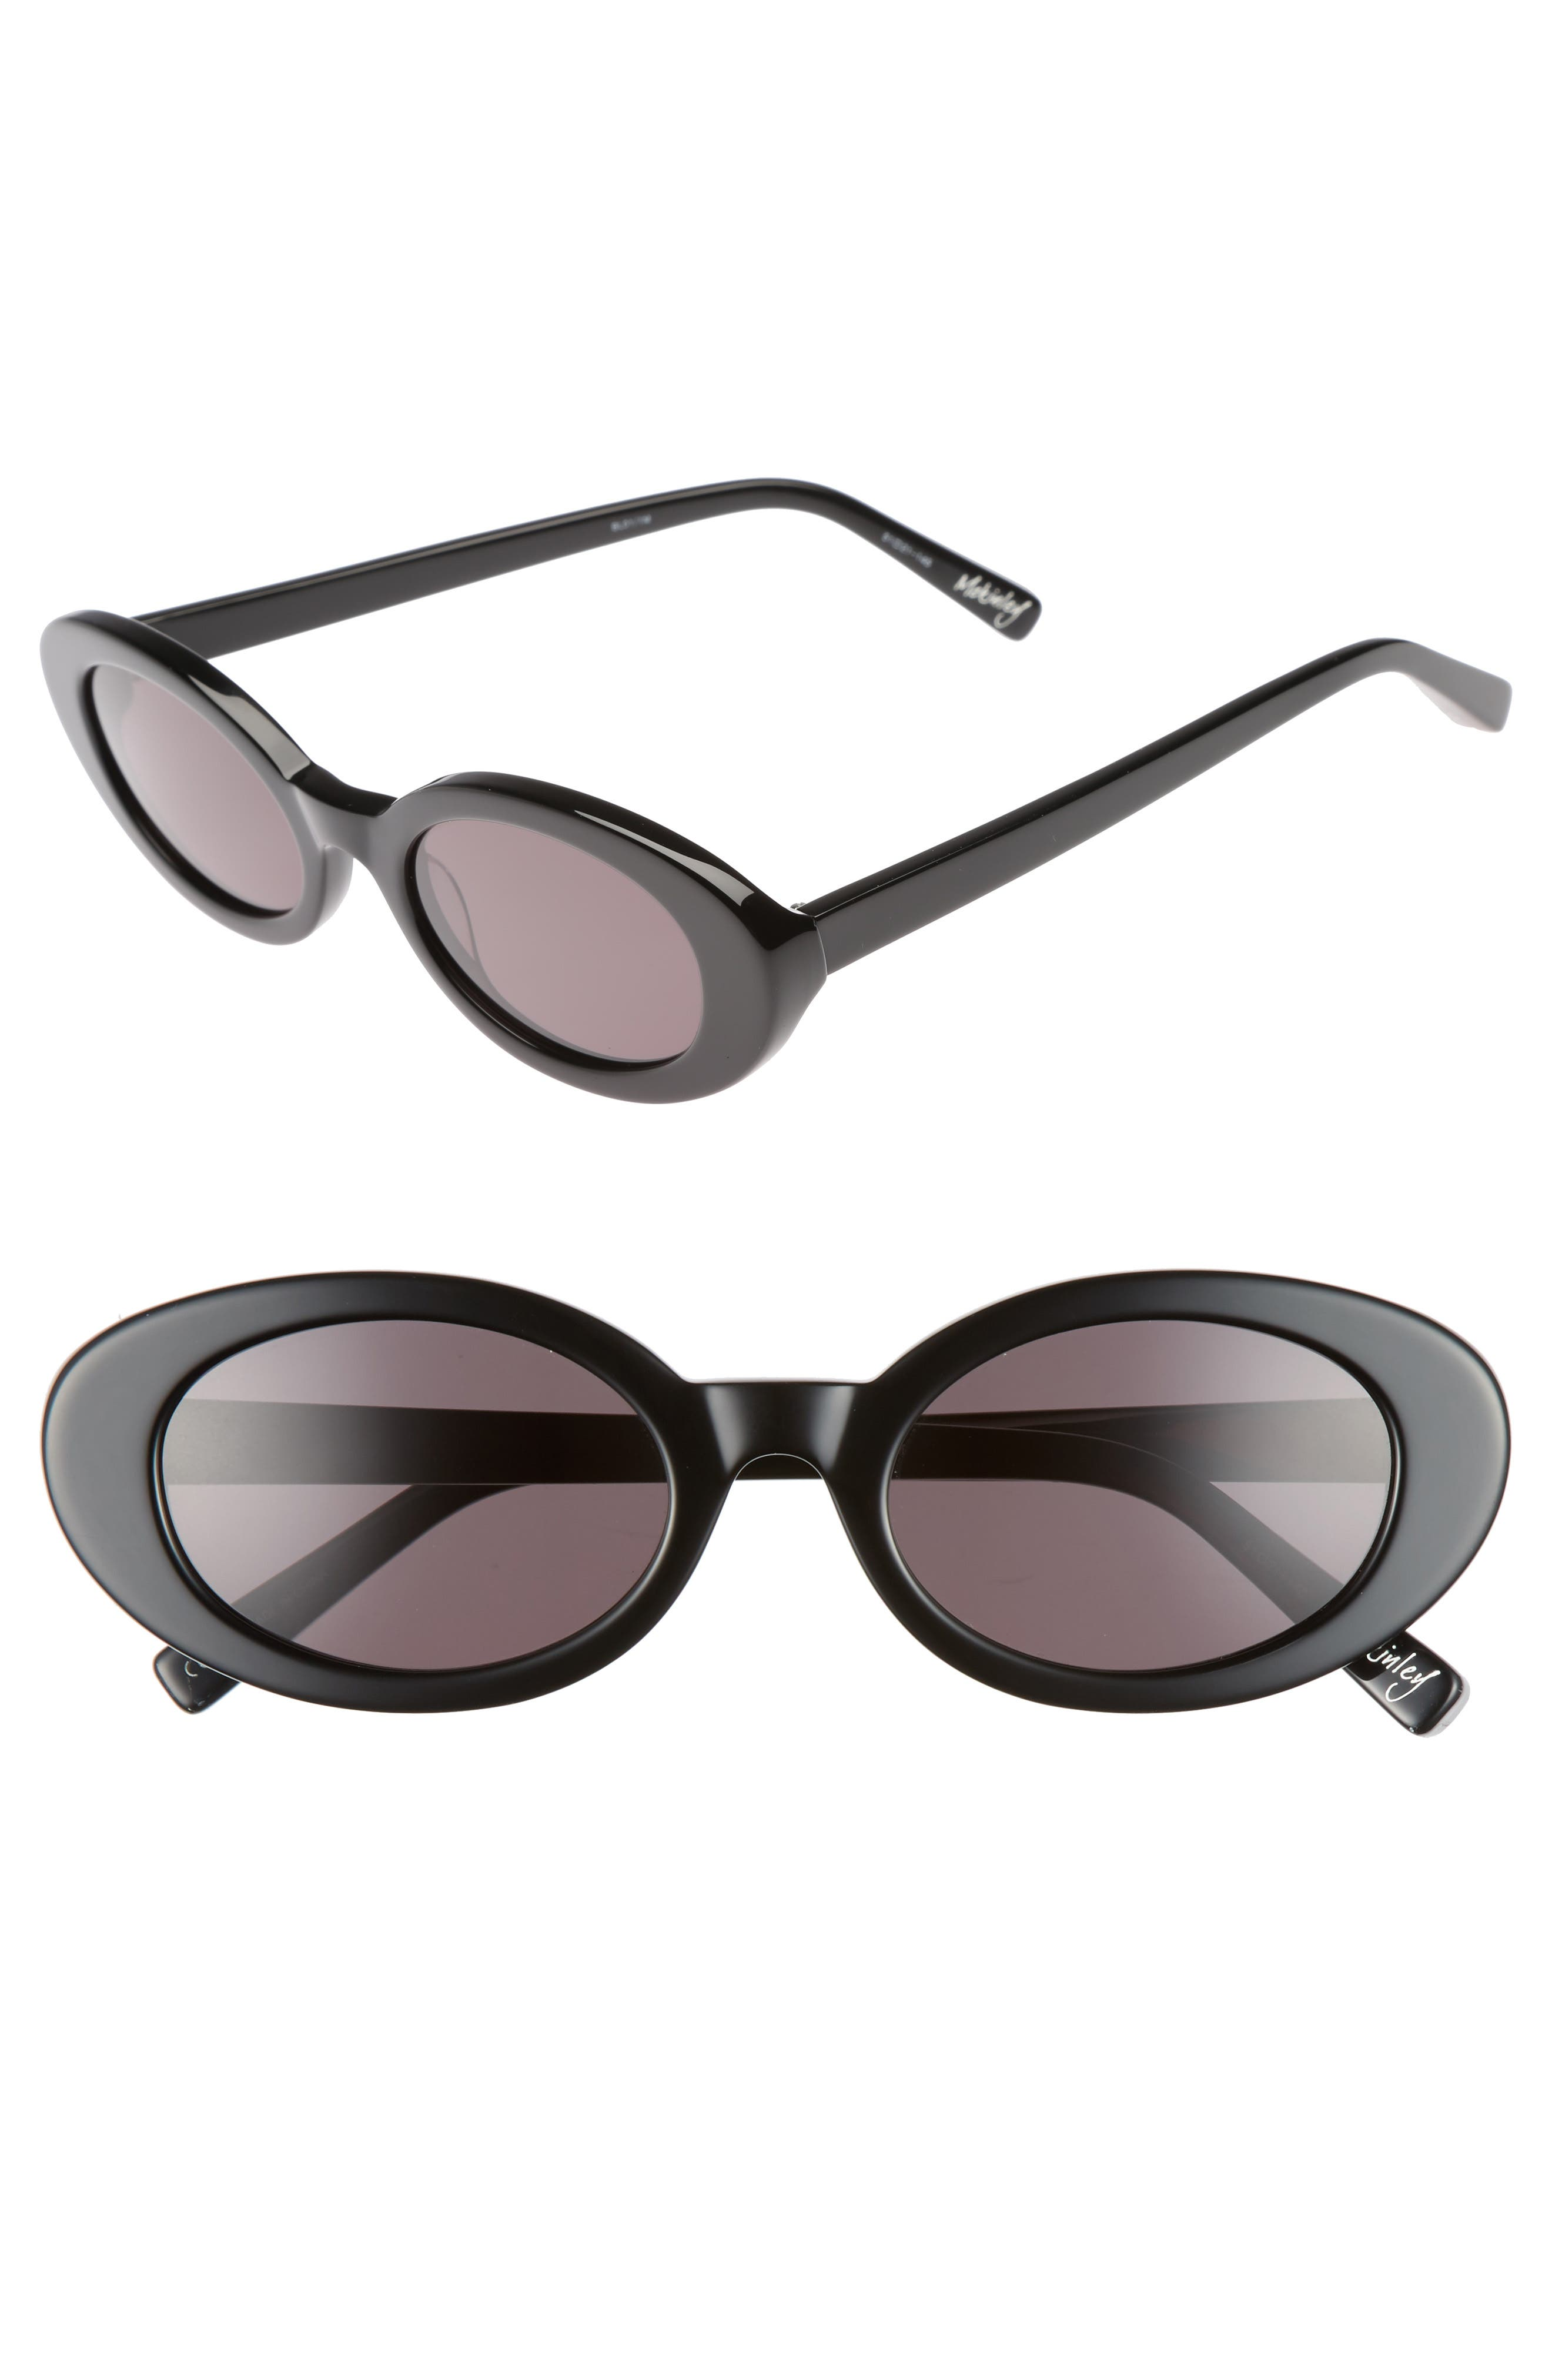 McKinely 51mm Oval Sunglasses,                             Main thumbnail 1, color,                             001